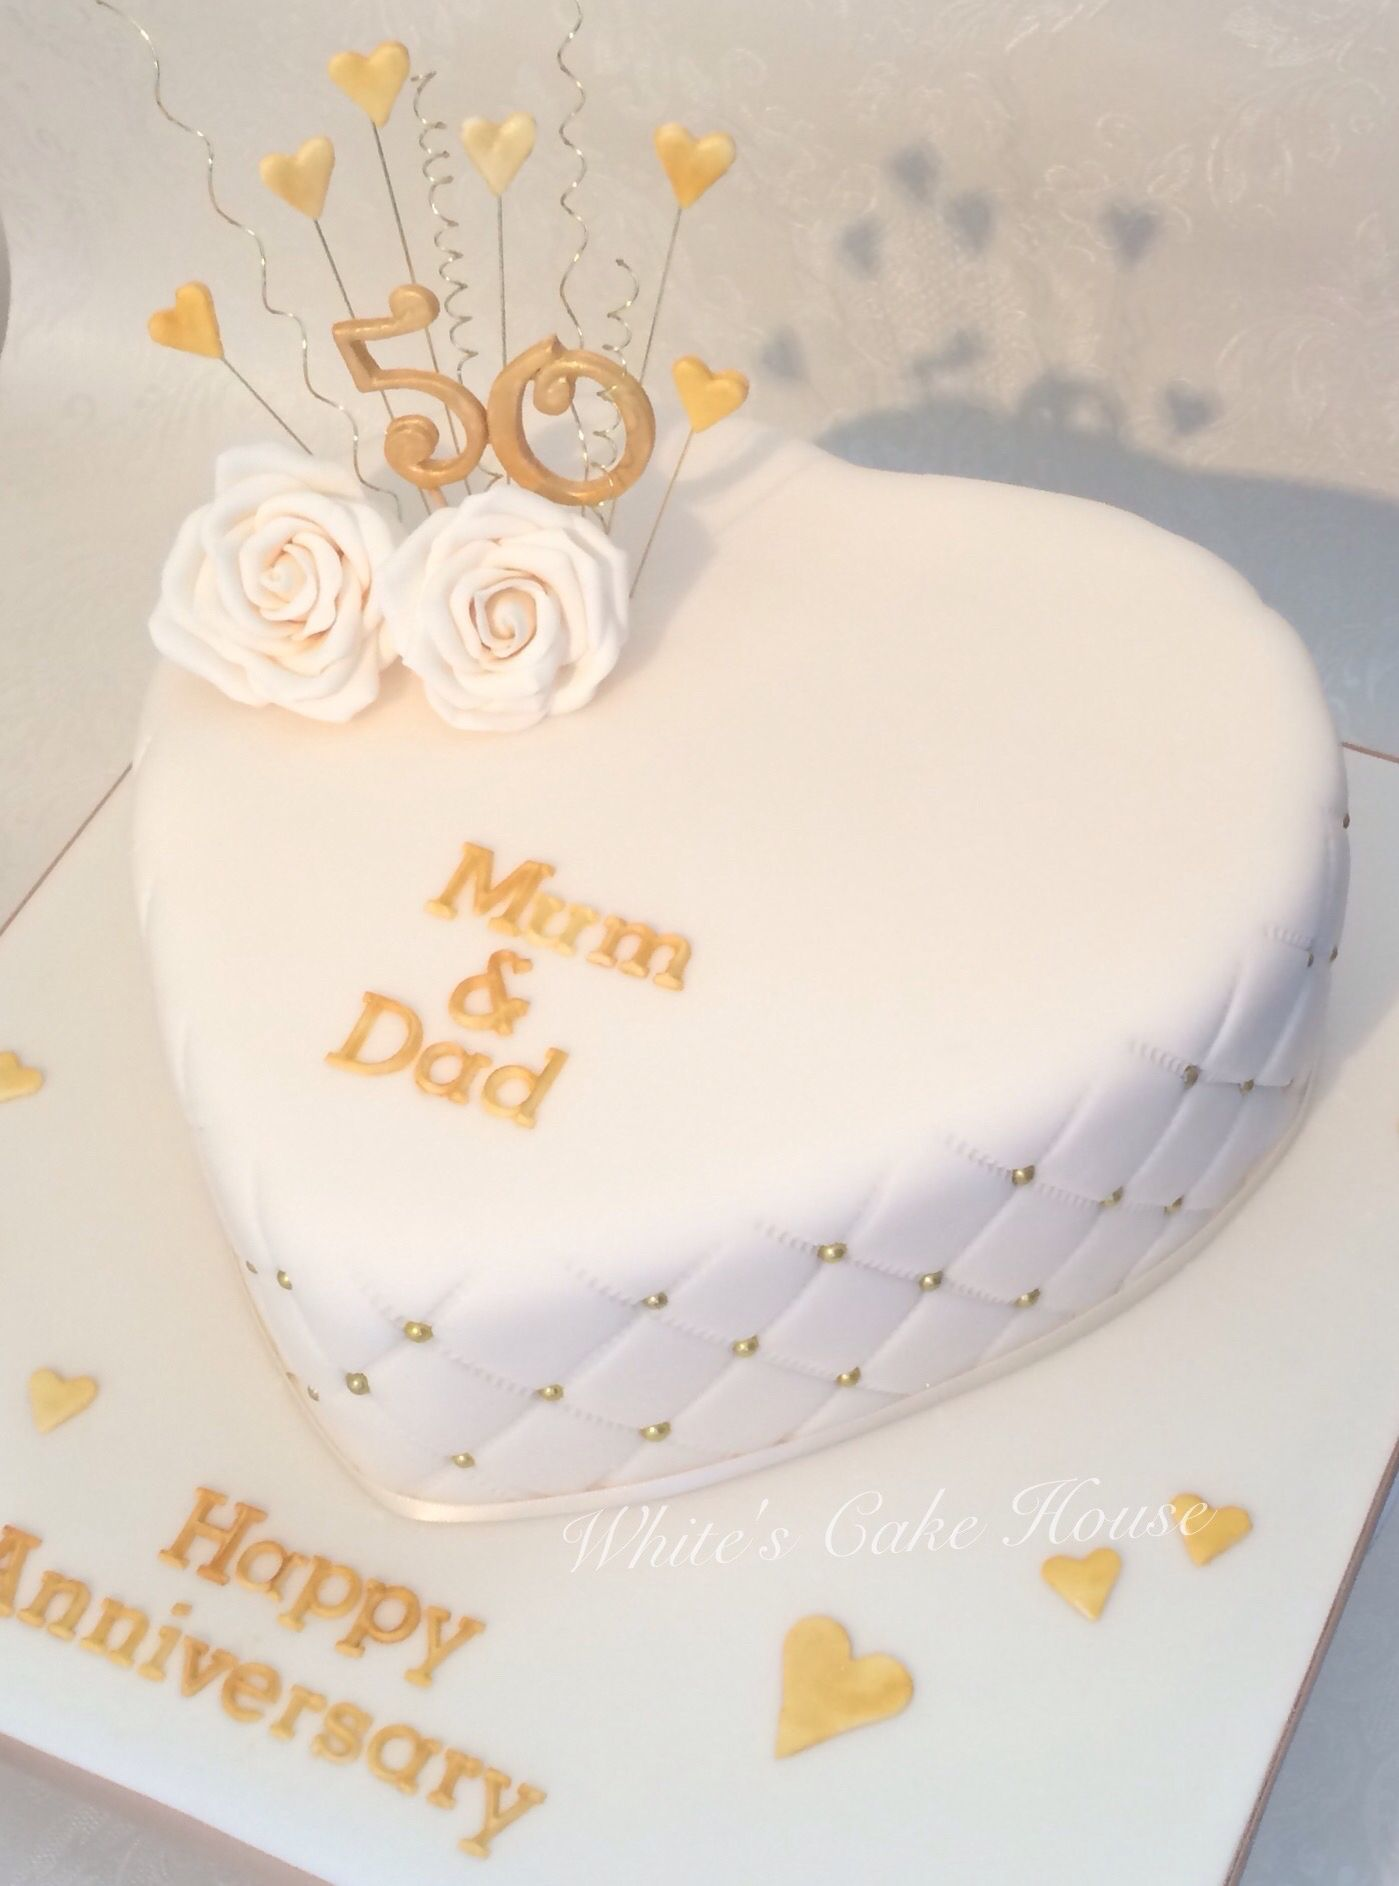 Heart shaped golden anniversary cake       Weddings   Pinterest     Heart shaped golden anniversary cake